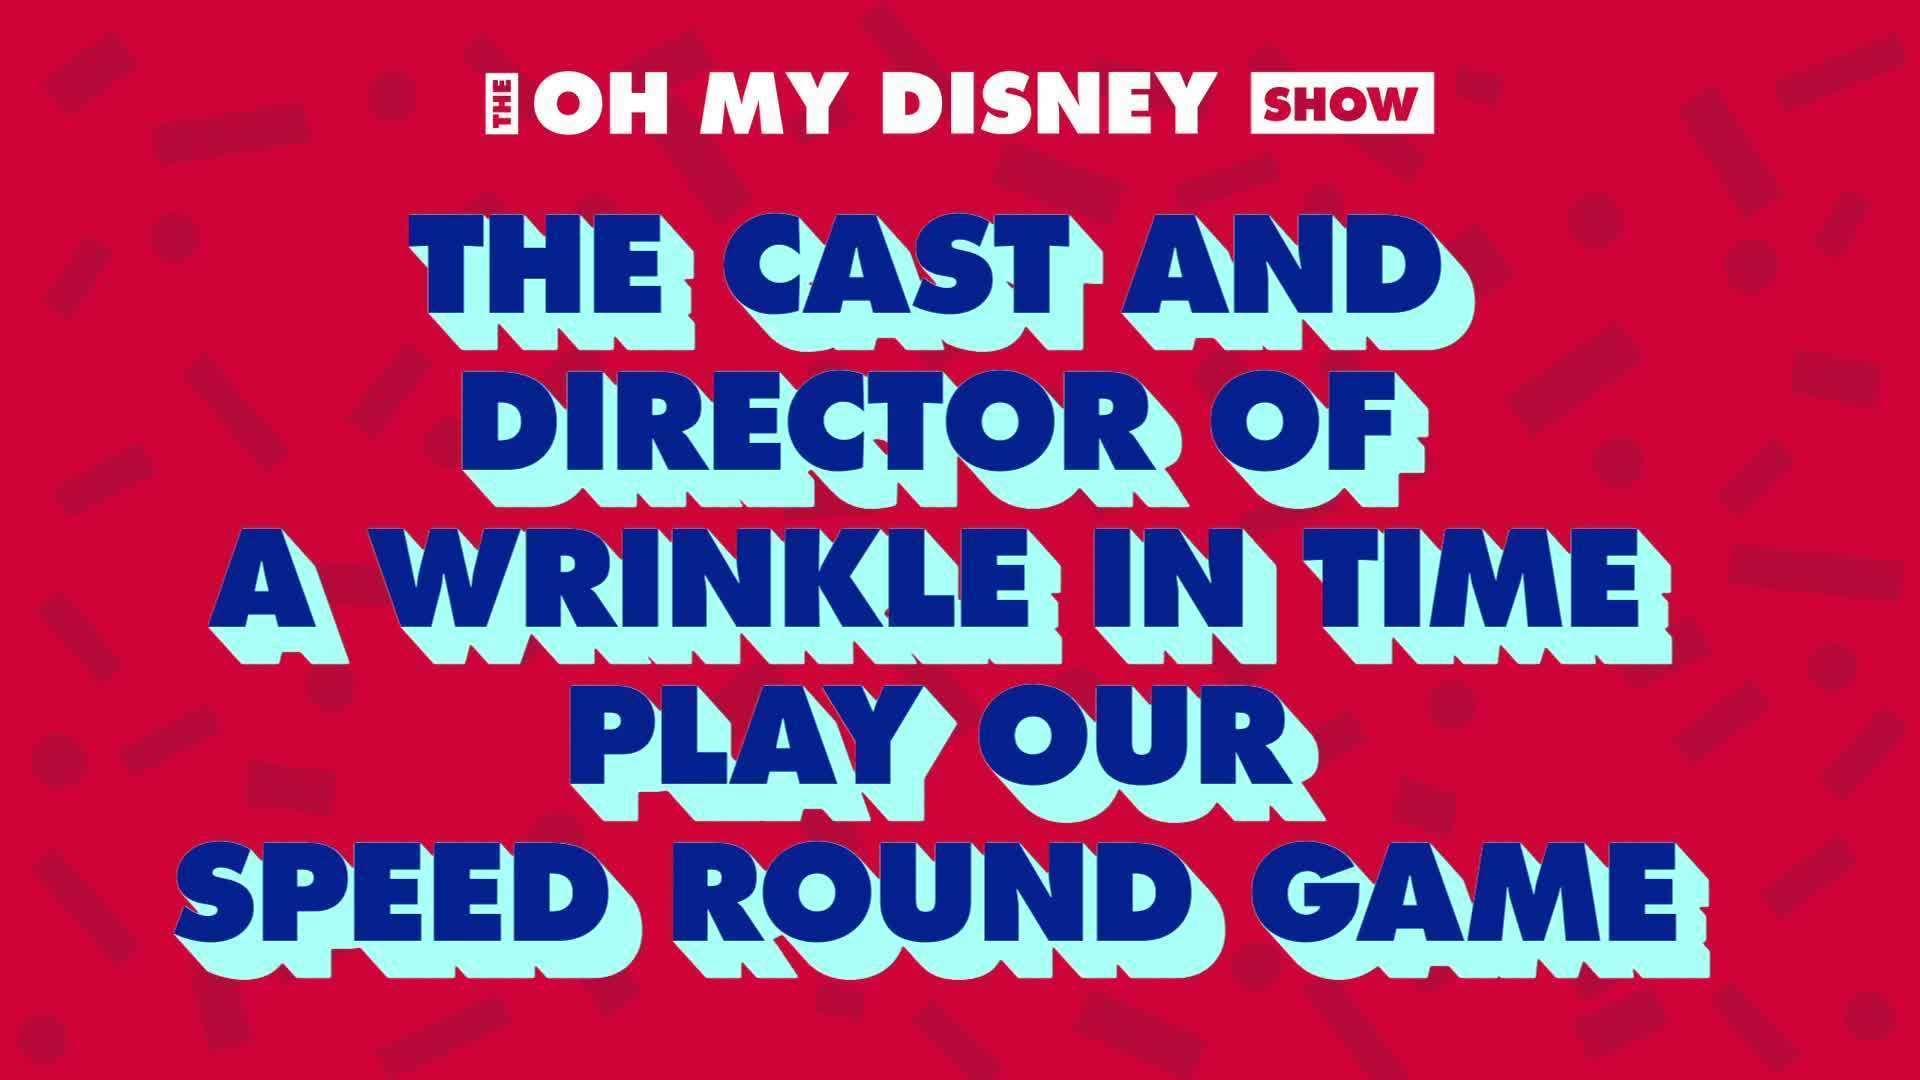 The Cast and Director of A Wrinkle in Time Play Our Speed Round Game | Oh My Disney Show by Oh My Disney